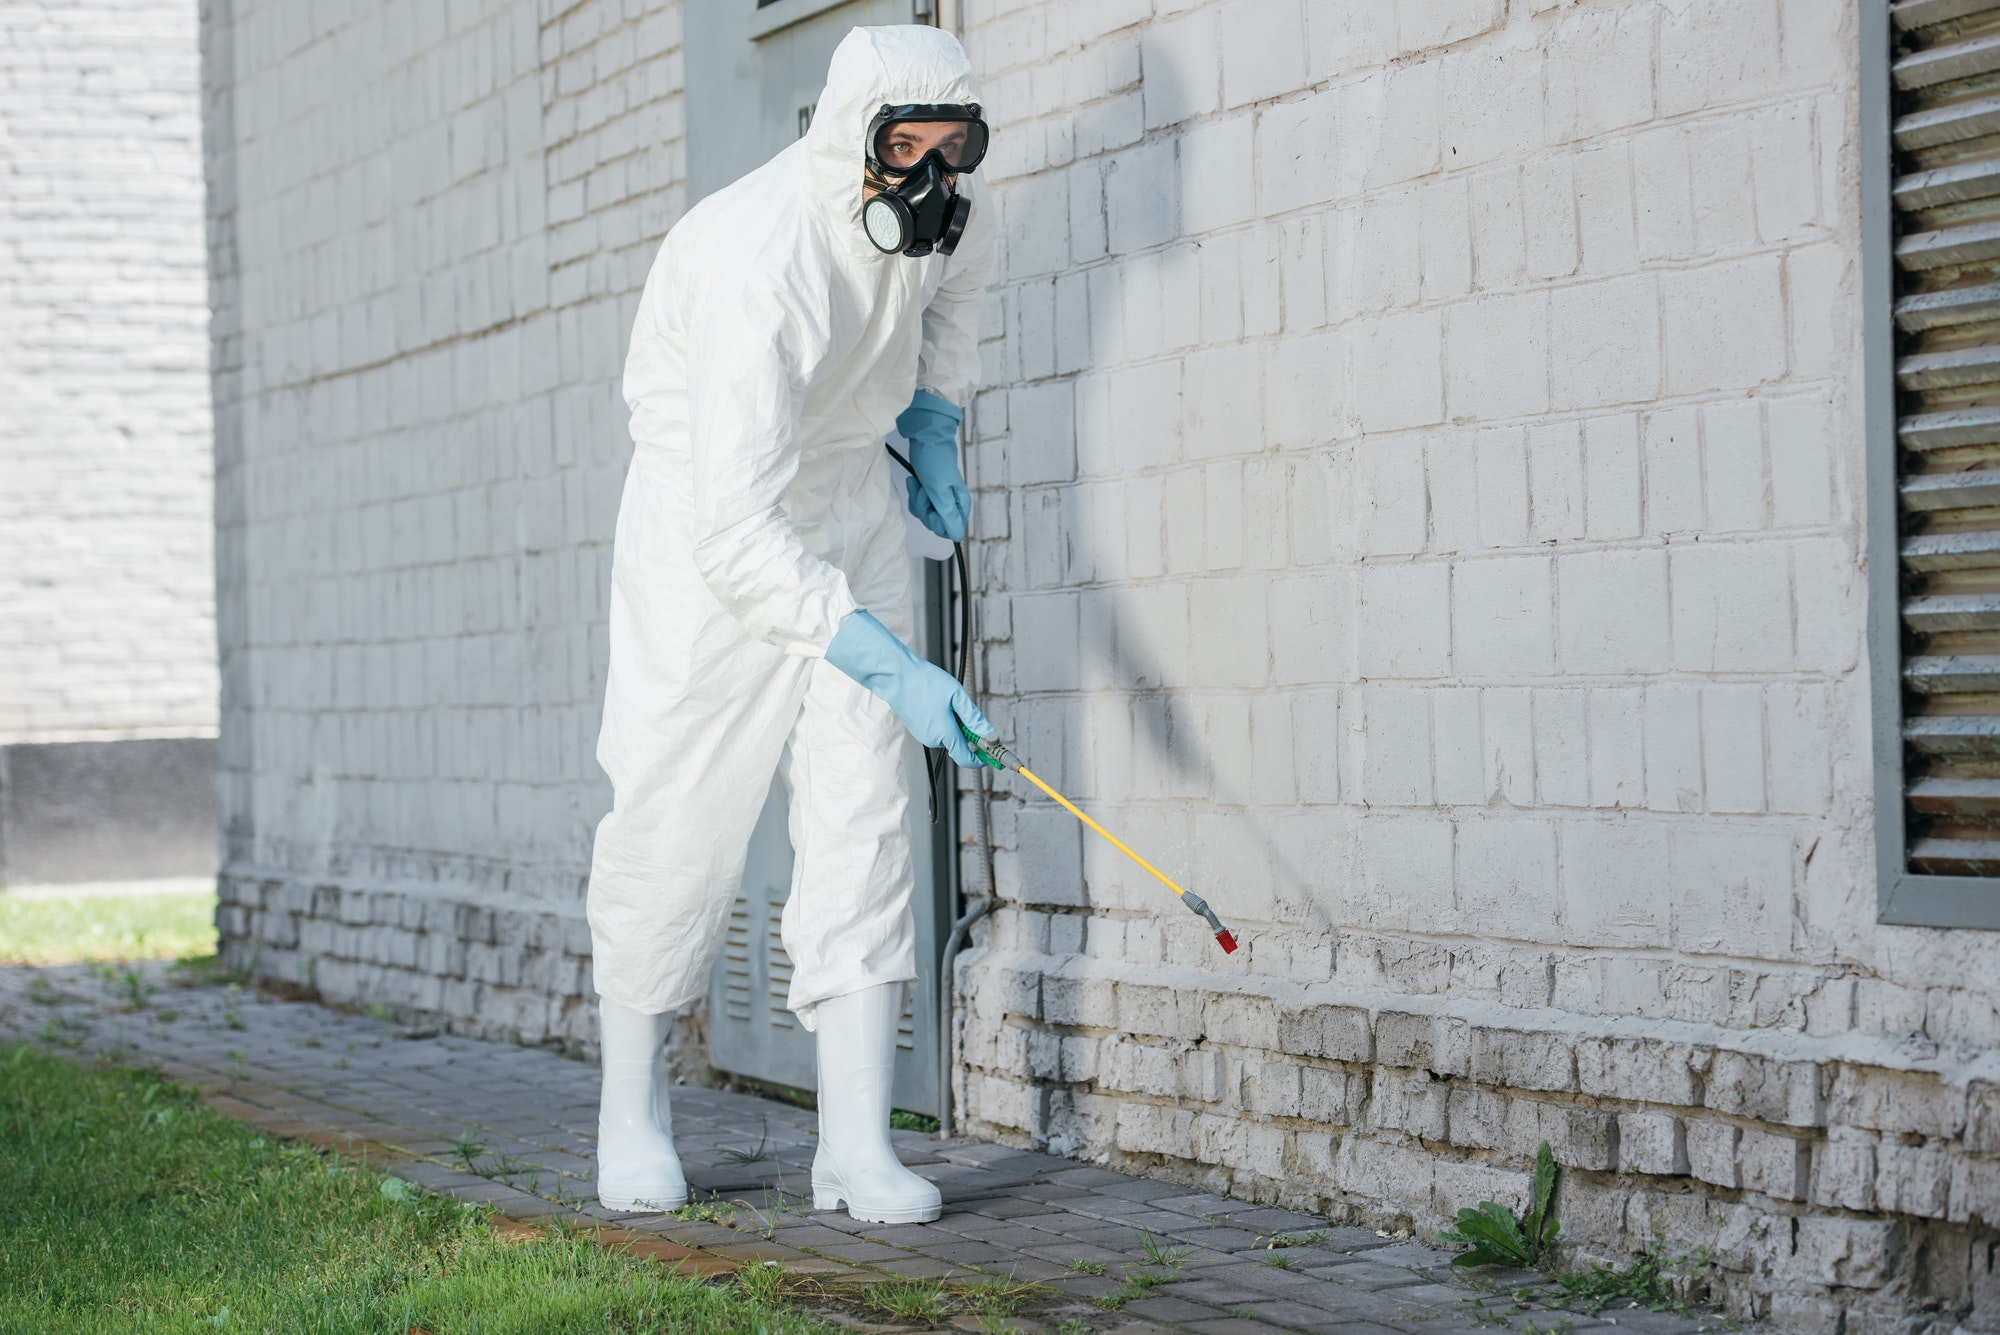 pest control worker spraying chemicals with sprayer on building wall